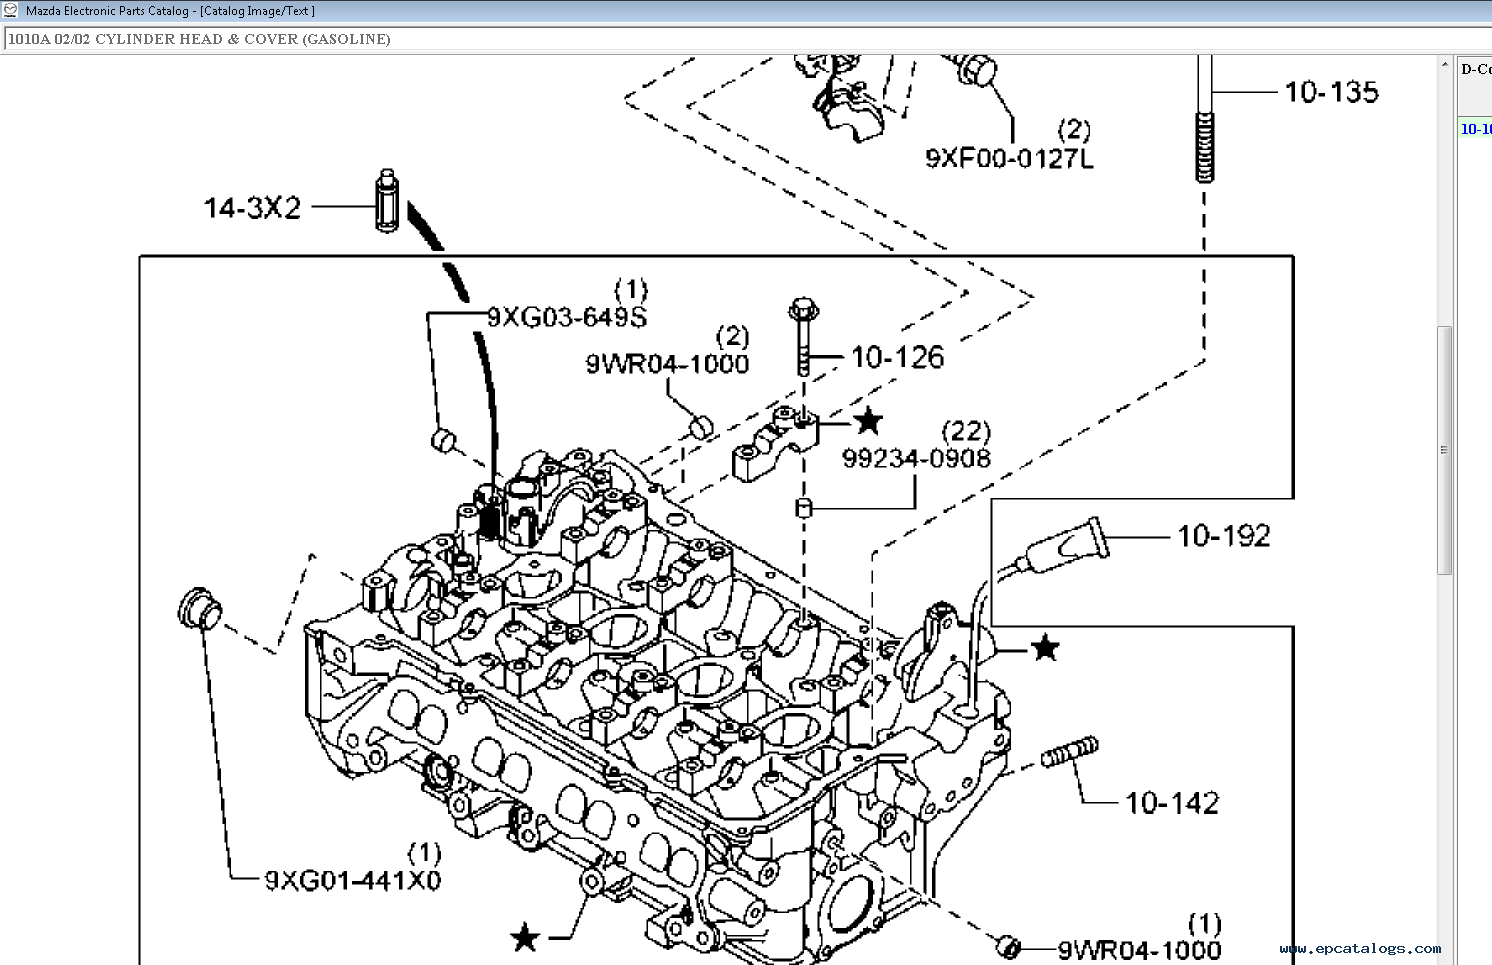 Cx 5 Mazda Spare Parts Diagram. Mazda. Auto Wiring Diagram